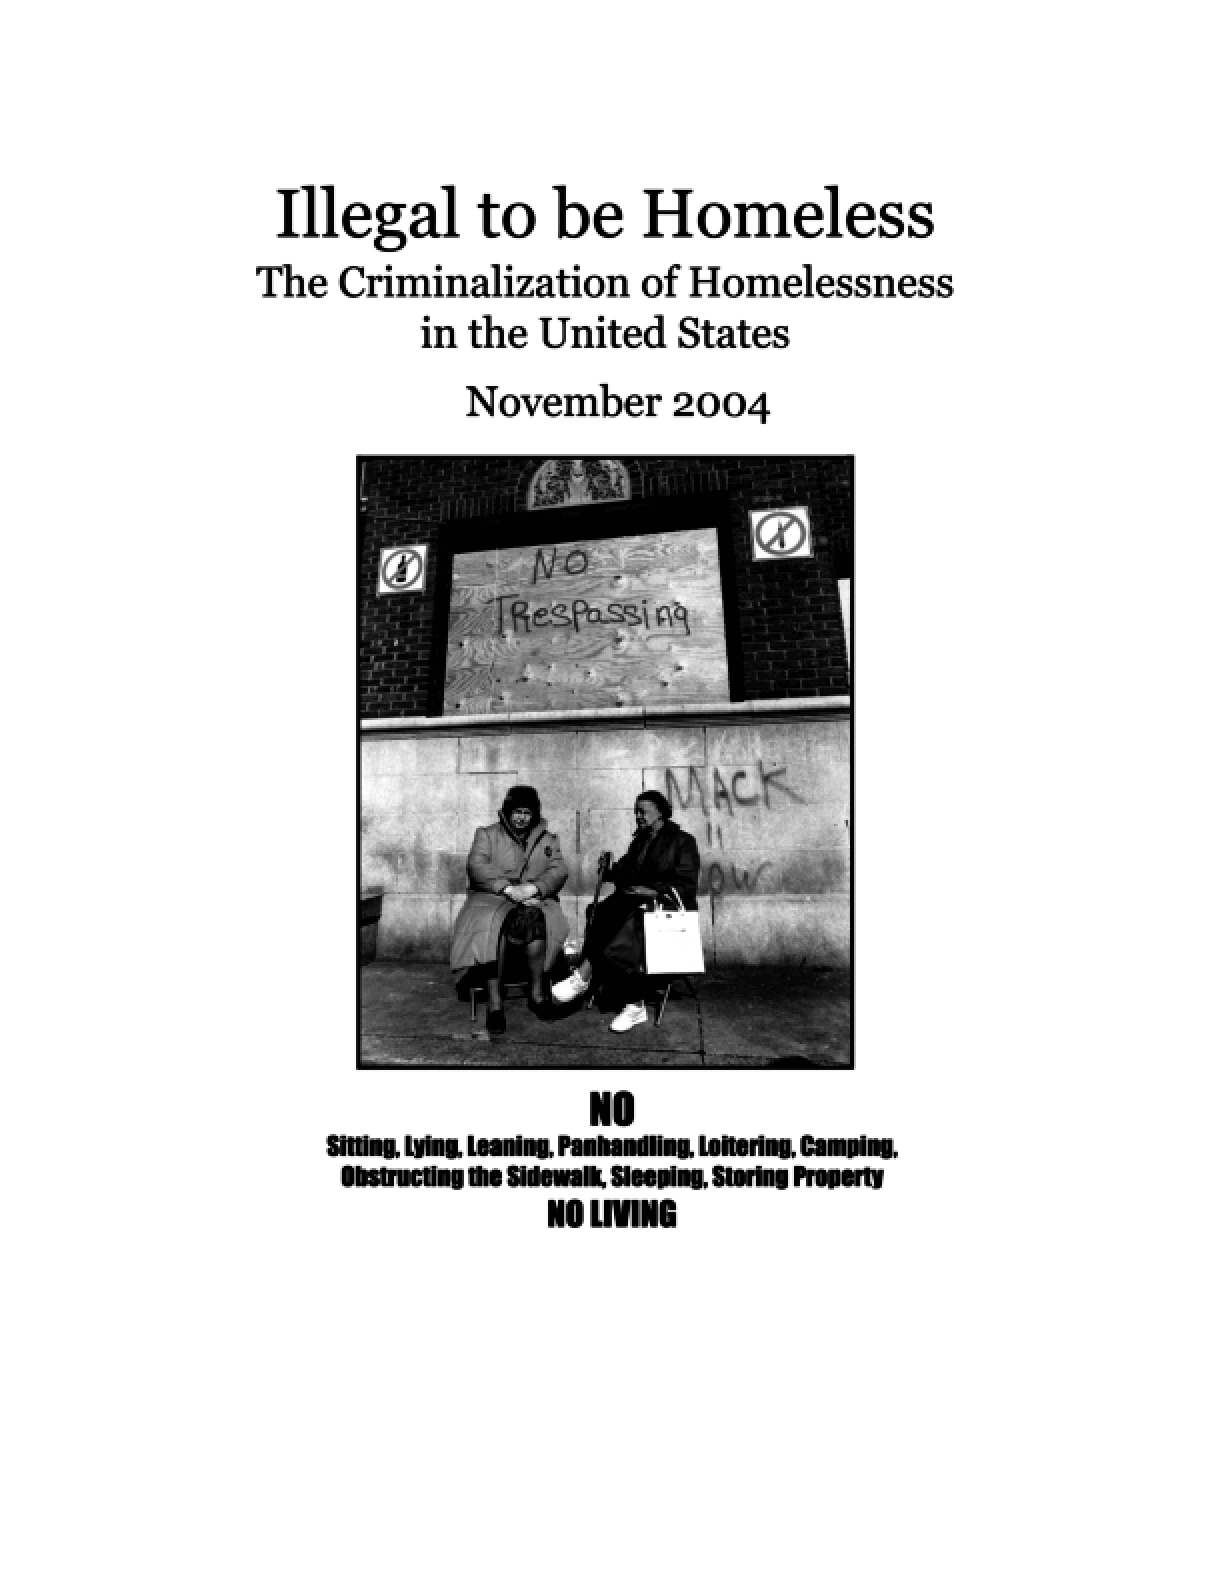 Illegal to Be Homeless: The Criminalization of Homelessness in the United States 2004